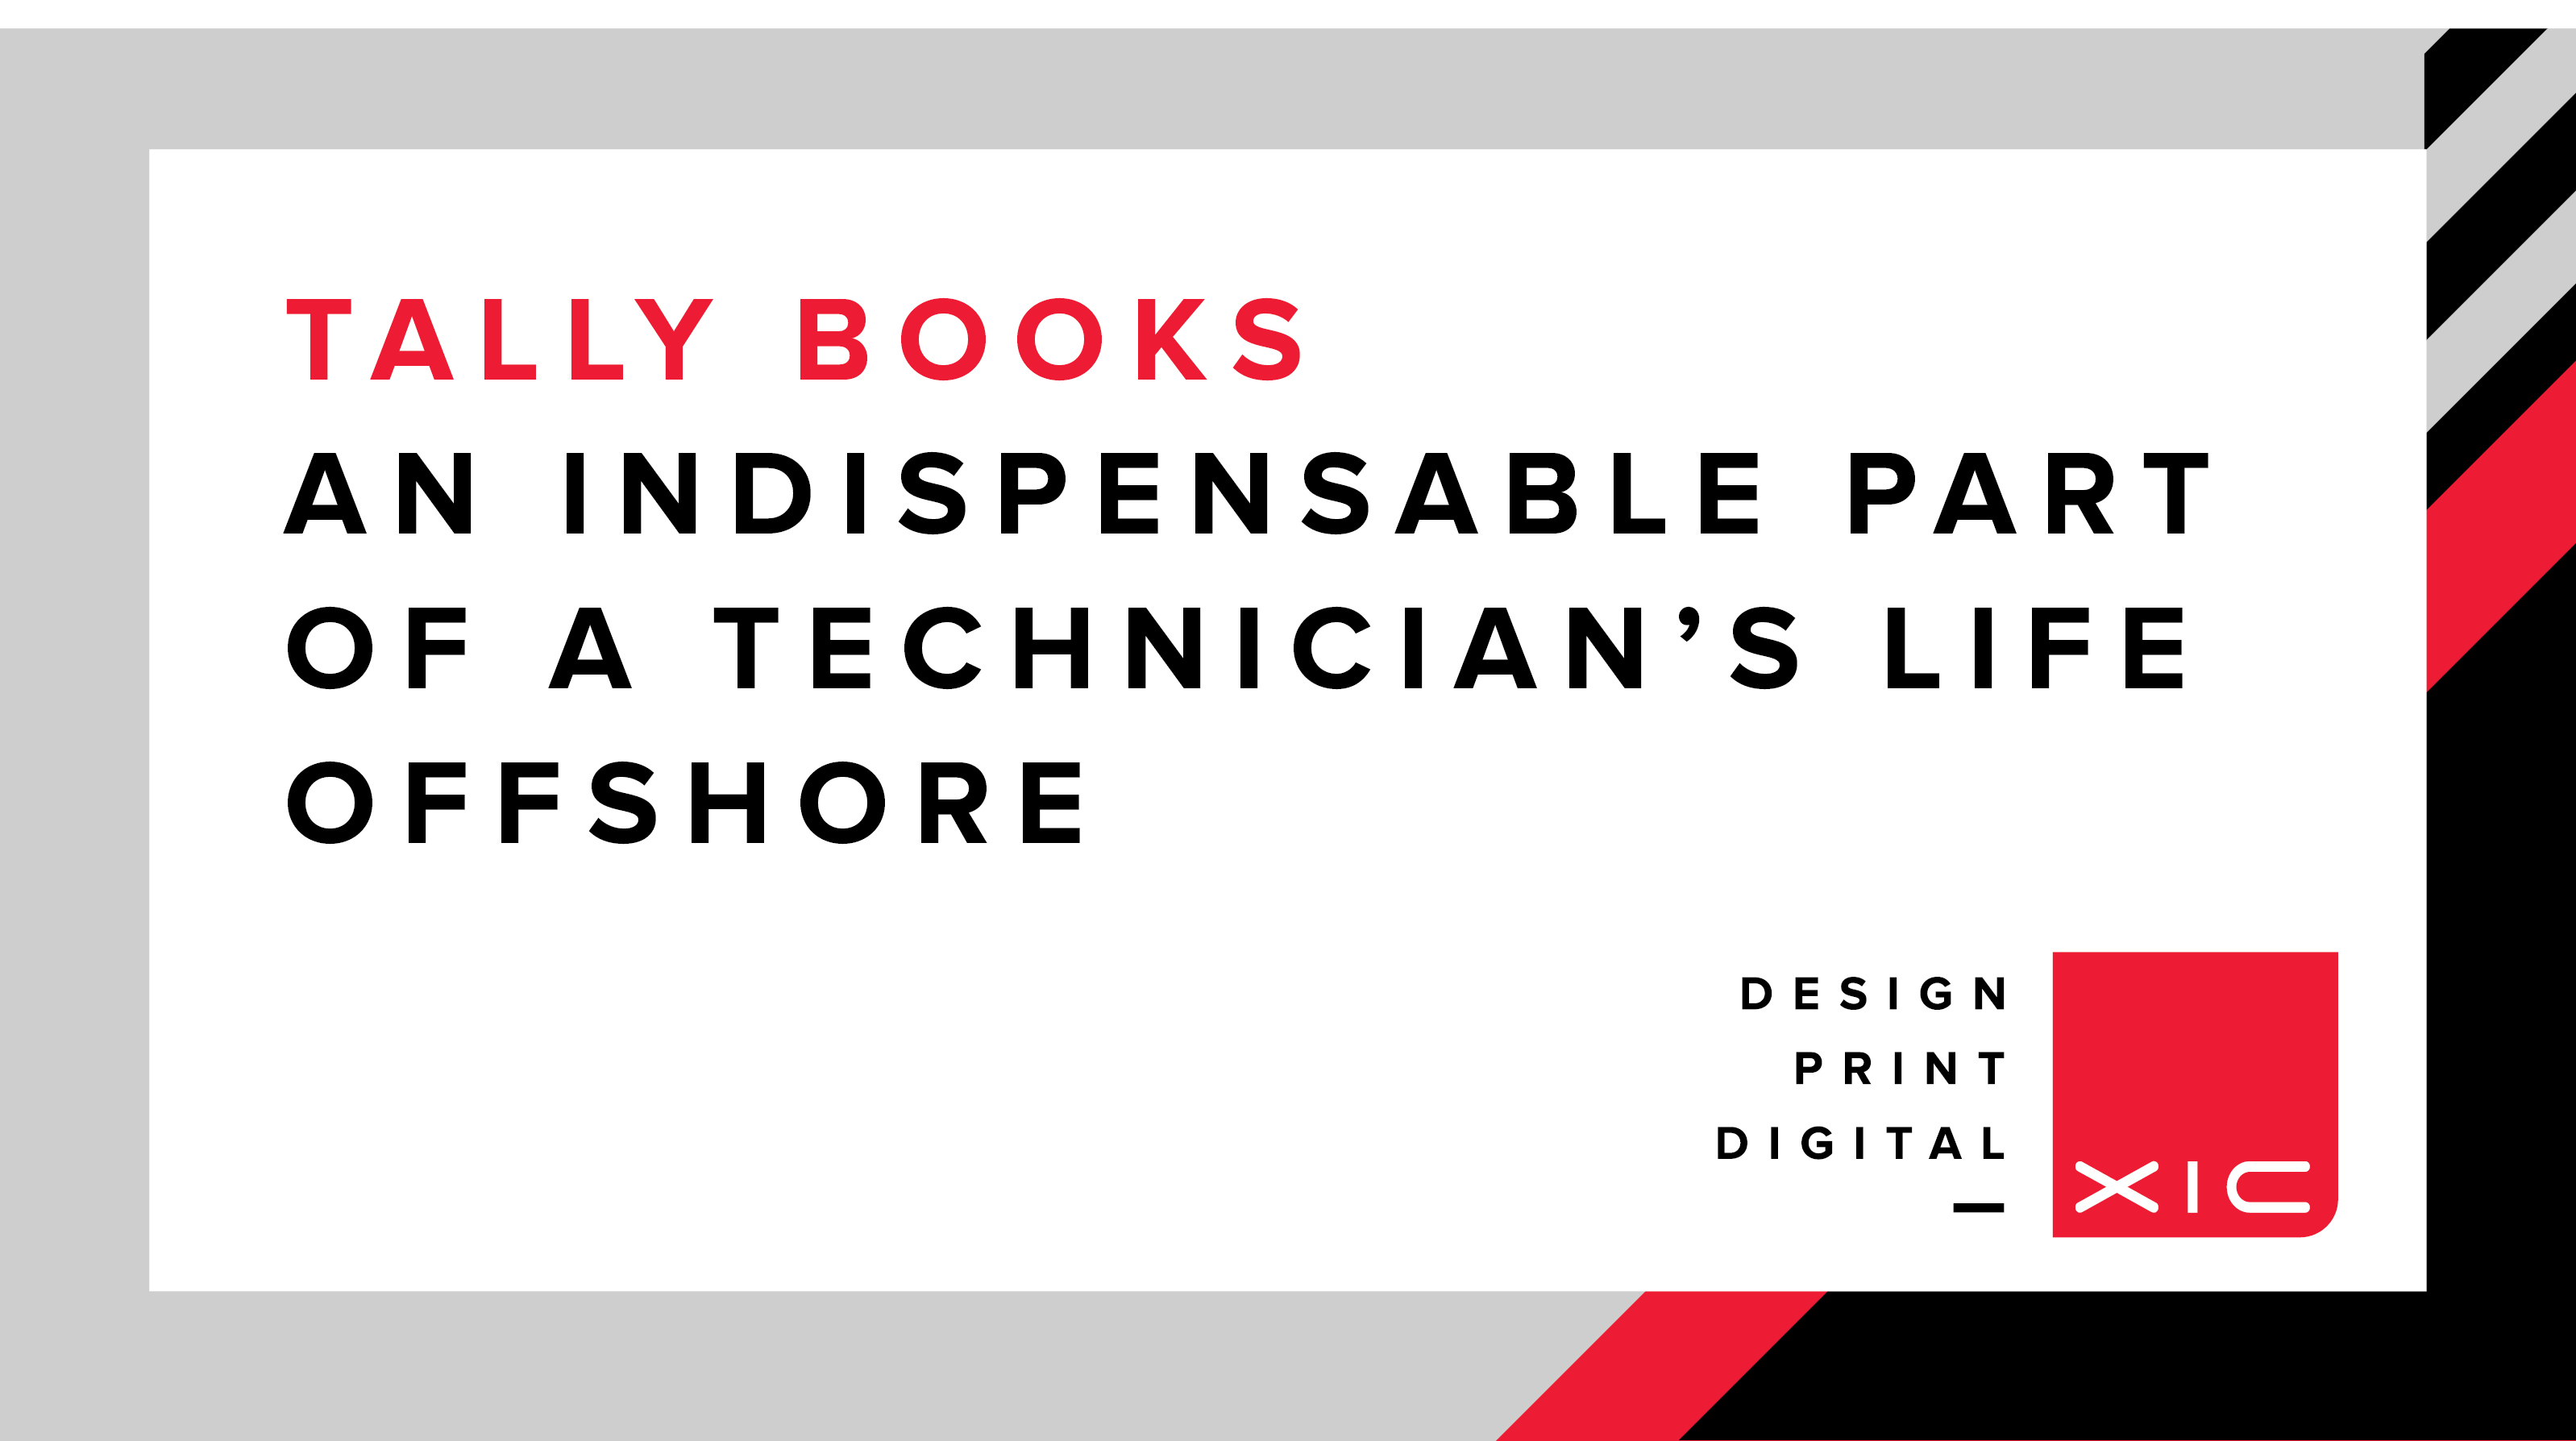 Tally Books – an indispensable part of a technician's life offshore